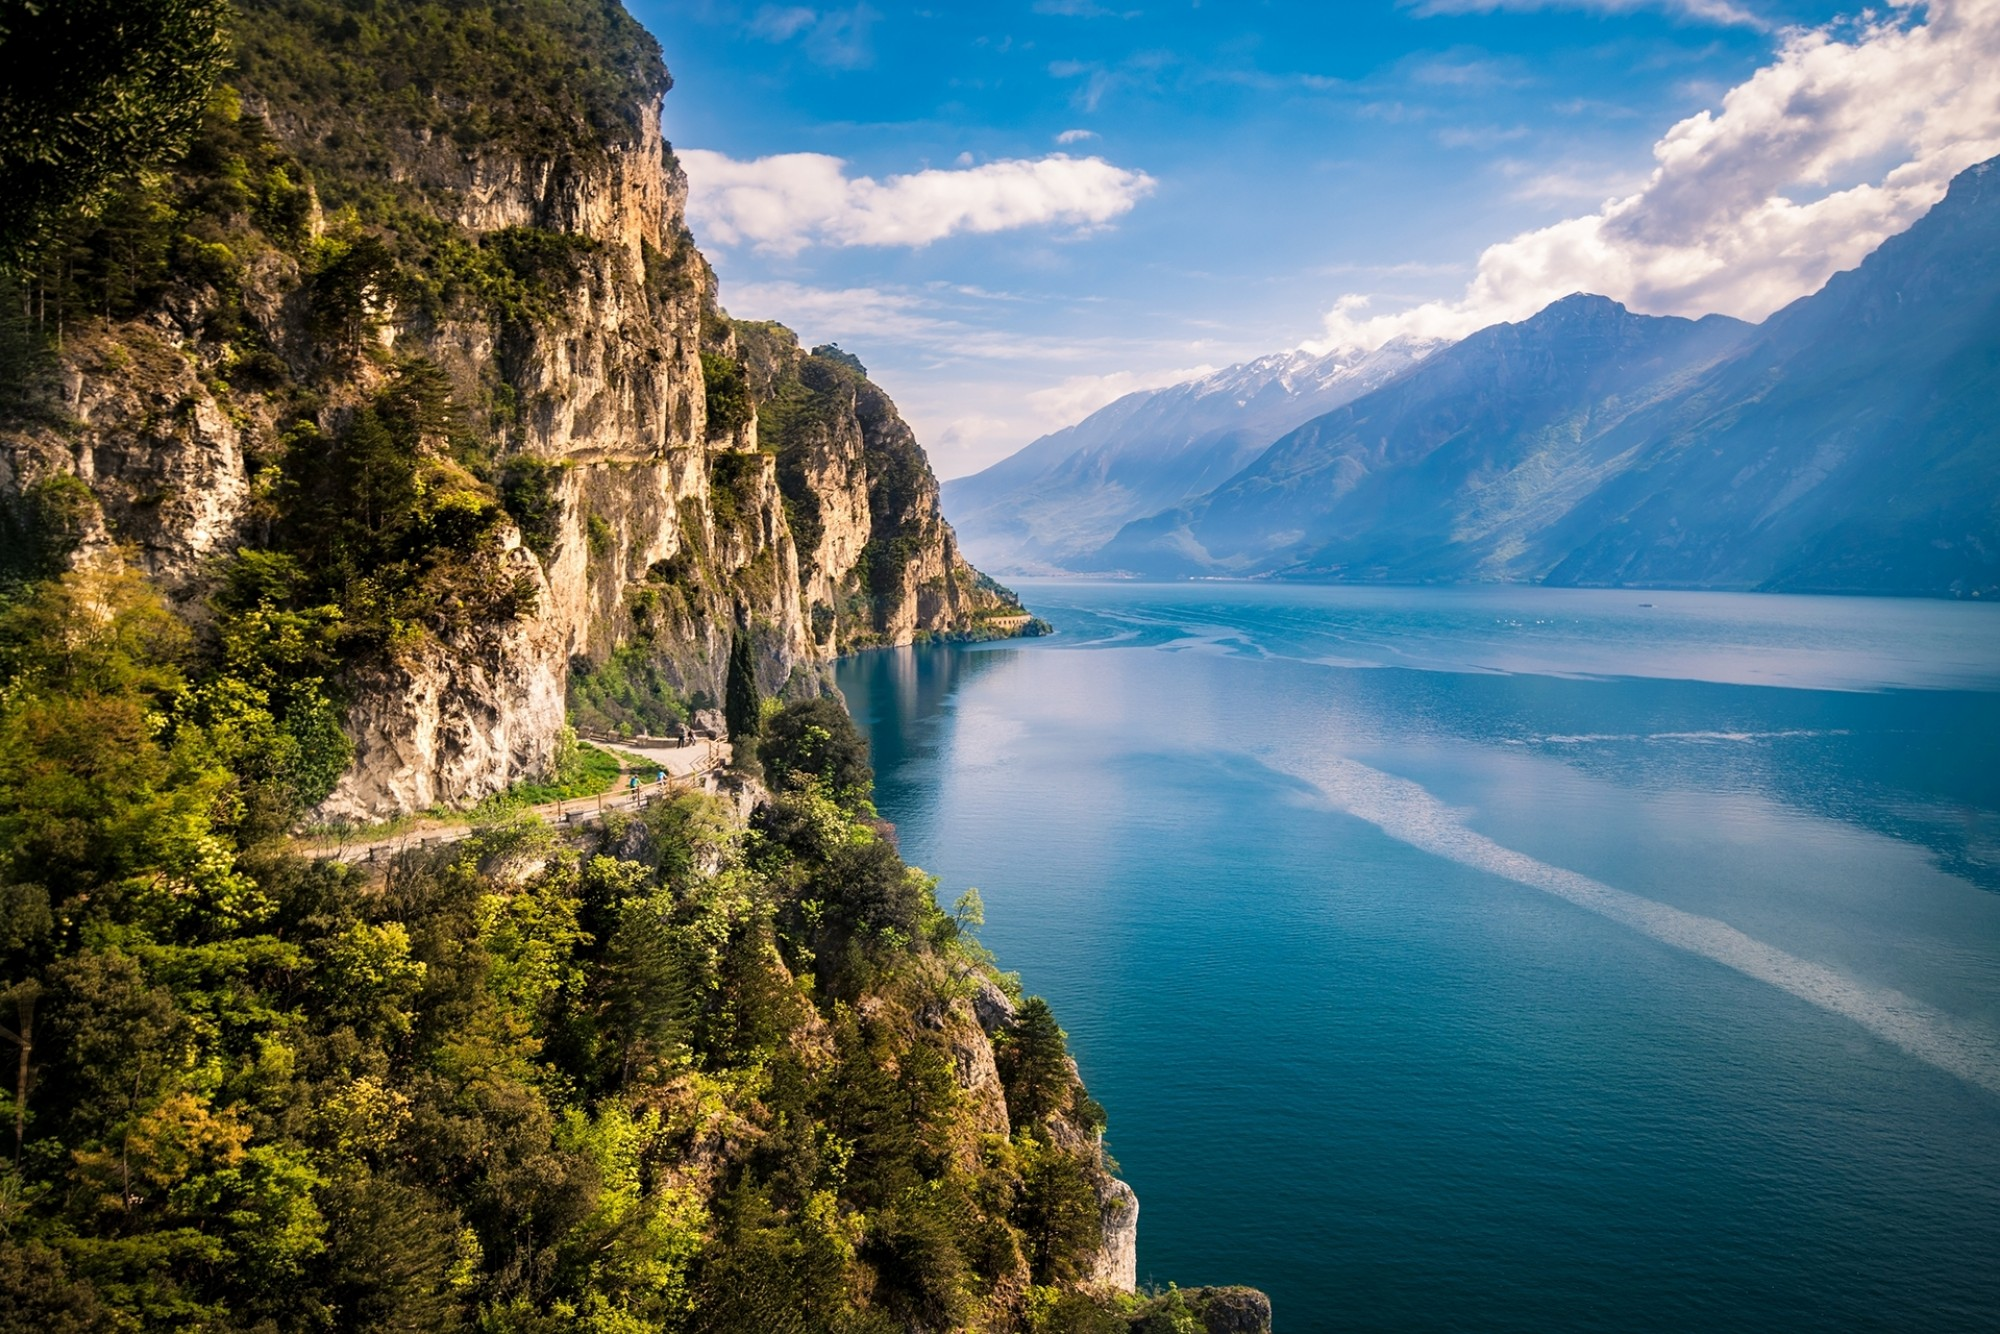 Northern-Lake-Garda_shutterstock_778059301_pointbreak